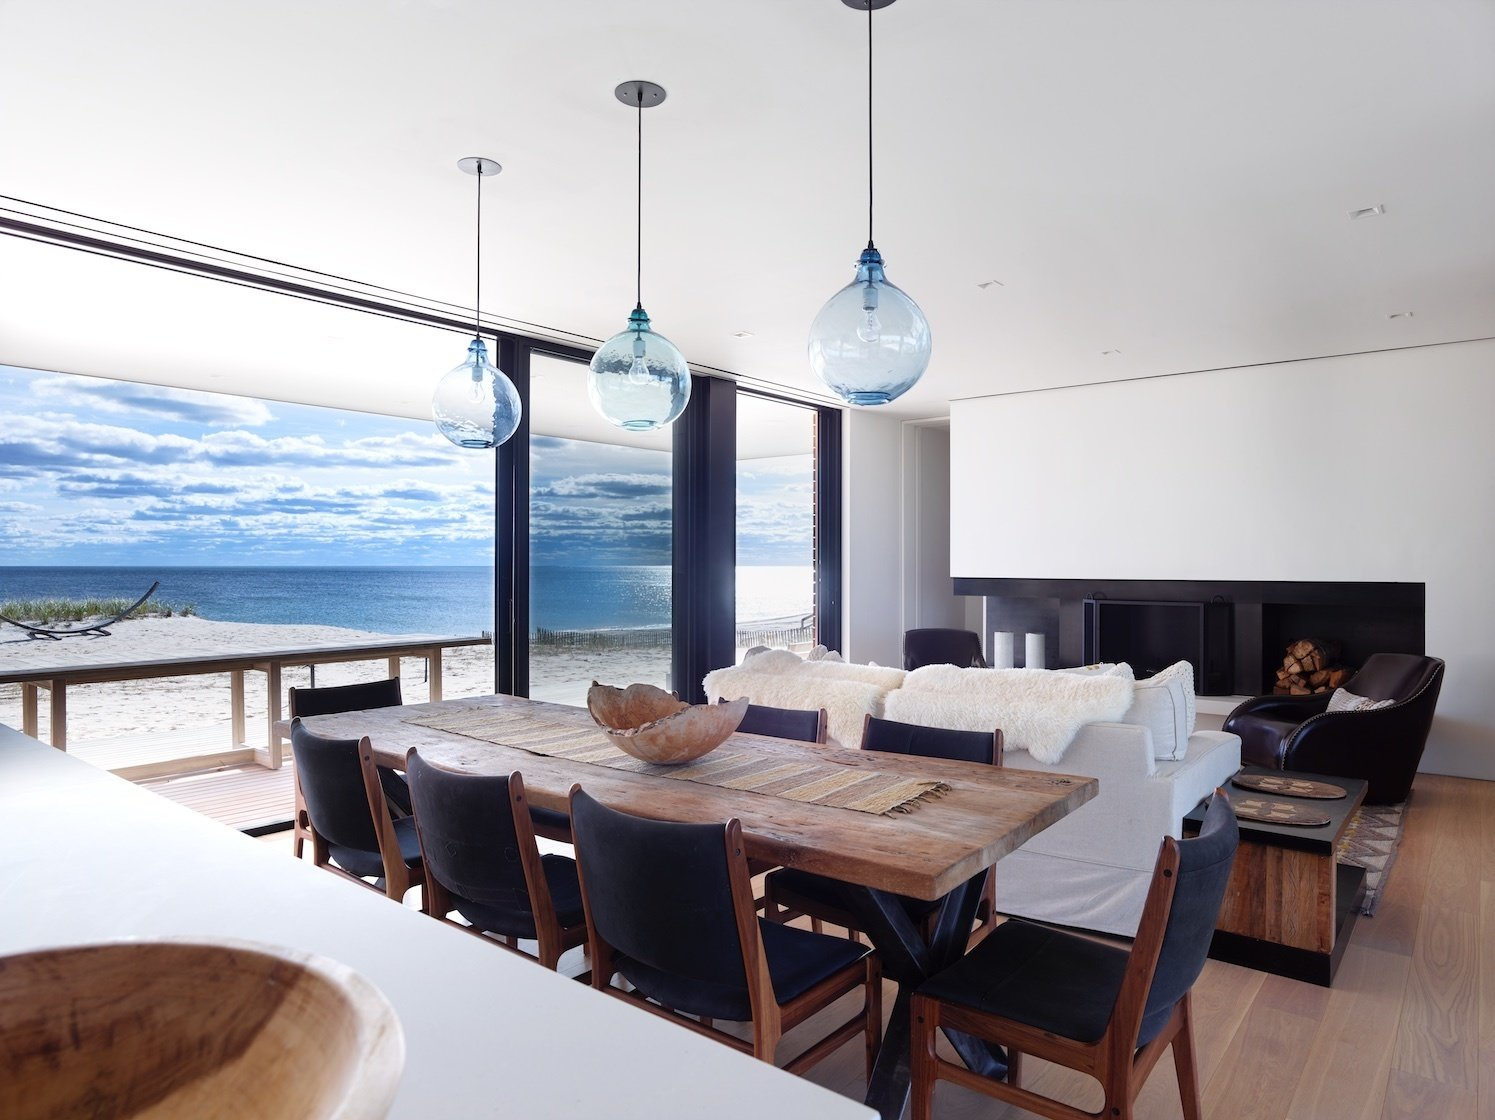 Dining and living room overlooking ocean  House On The Point by Stelle Lomont Rouhani Architects